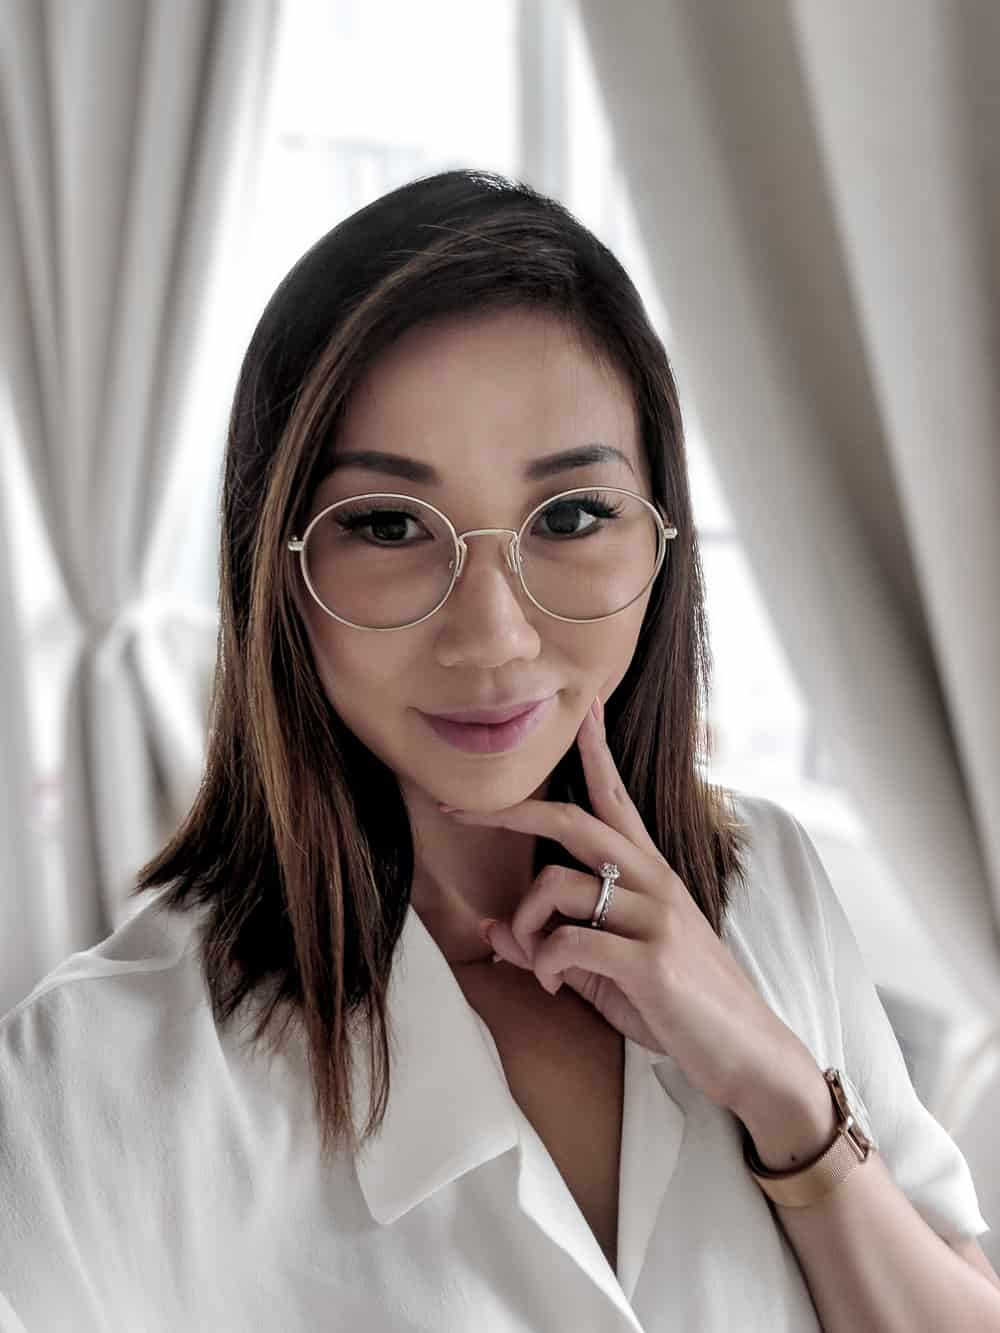 My new glasses from Clearly.ca - a review on buying glasses online